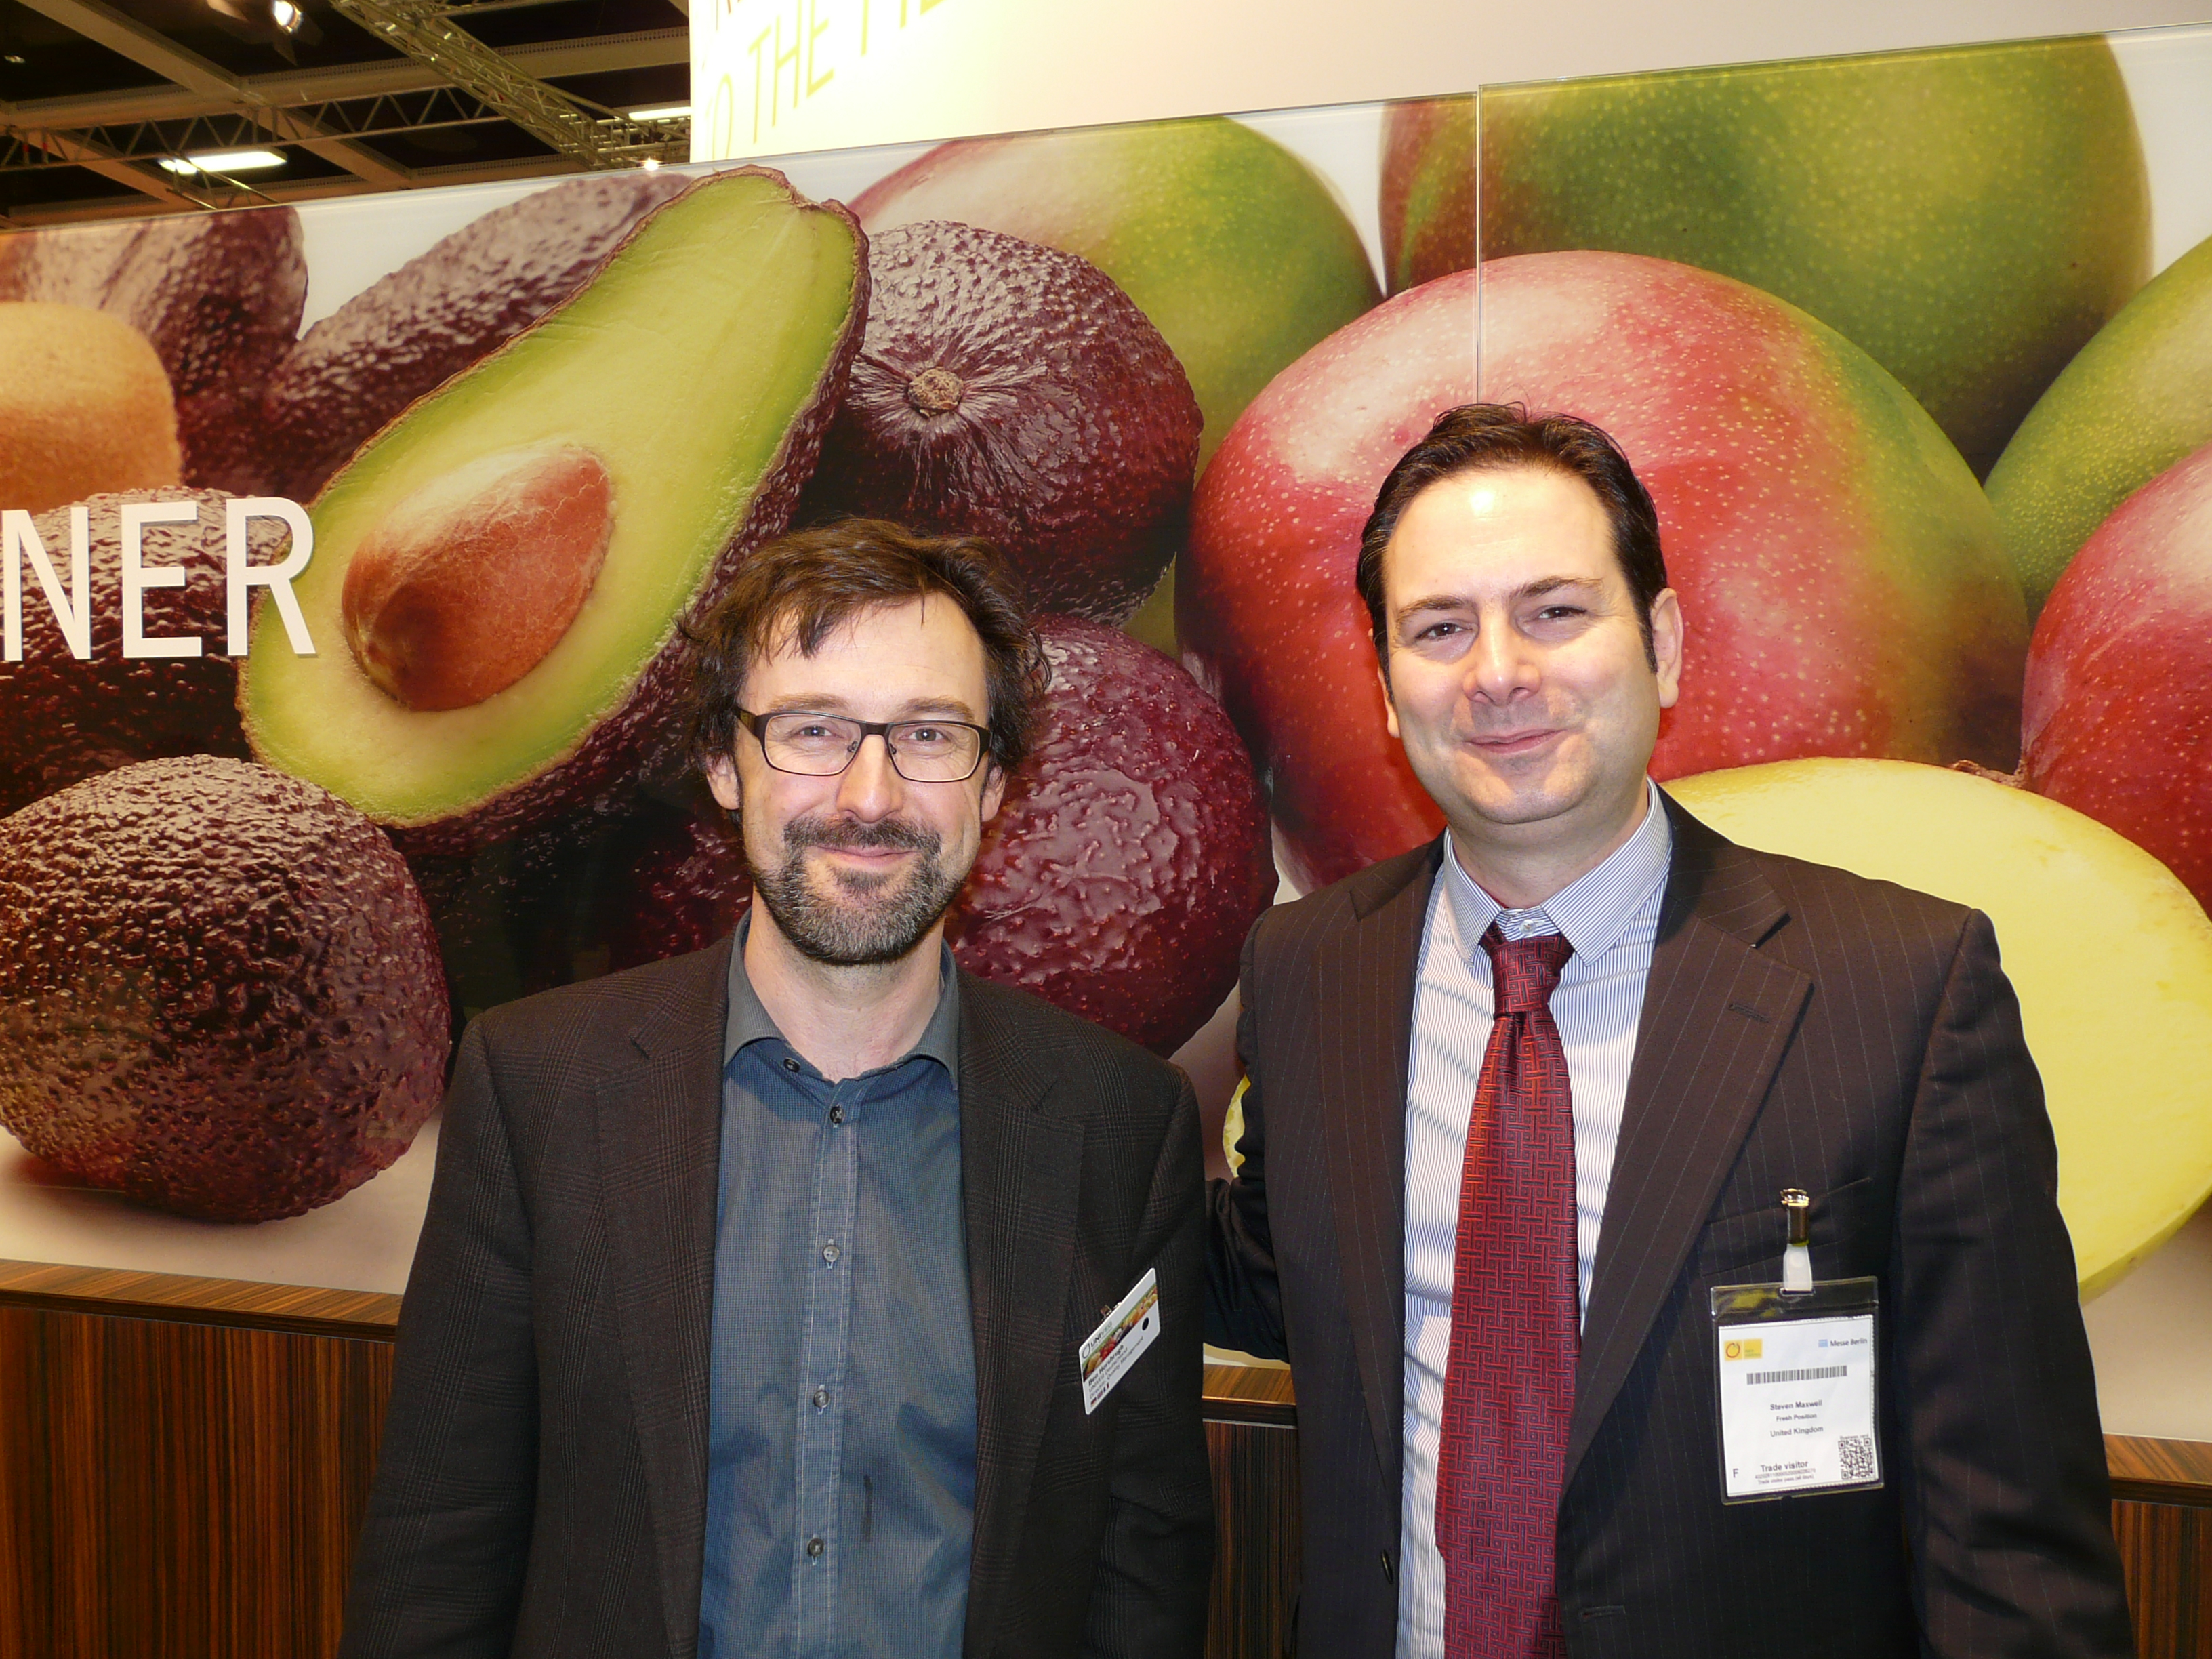 (l-r) Univeg's director of quality management, Ben Horsbrugh, with yours truly